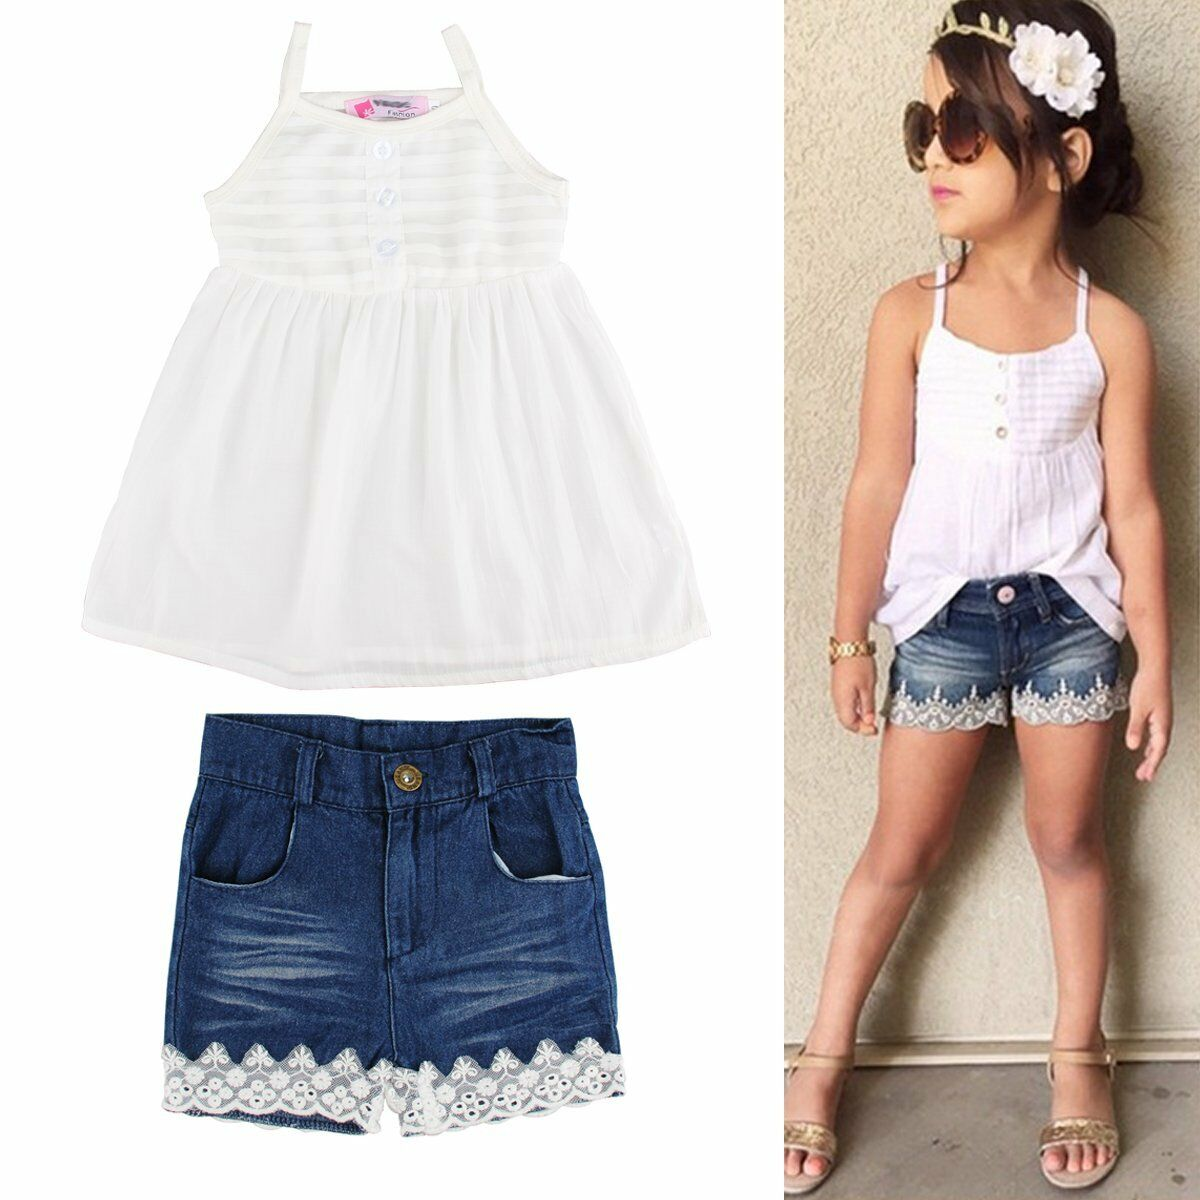 2pcs Toddler Kids Baby Girl Outfits Tank Top Dress+Lace Jeans Pants Clothes Sets u2022 $8.97 - PicClick